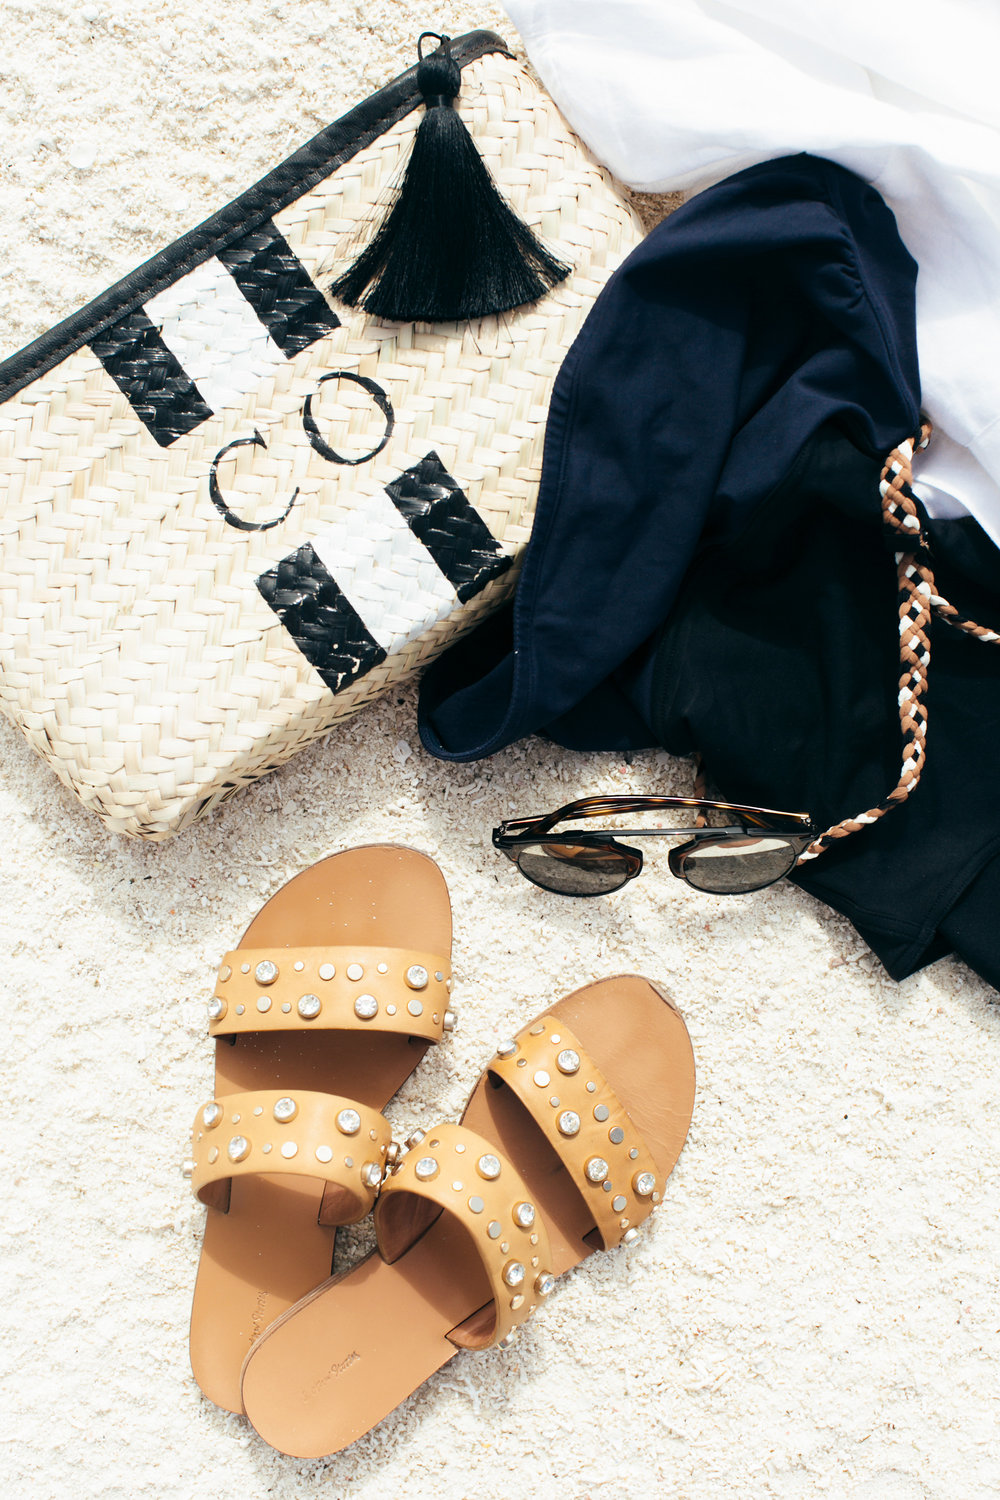 Swimsuit:  ERES  Bag:  Rae Feather  Shoes:  & Other Stories  Sunglasses:  Dior    Shirt dress:  GAP